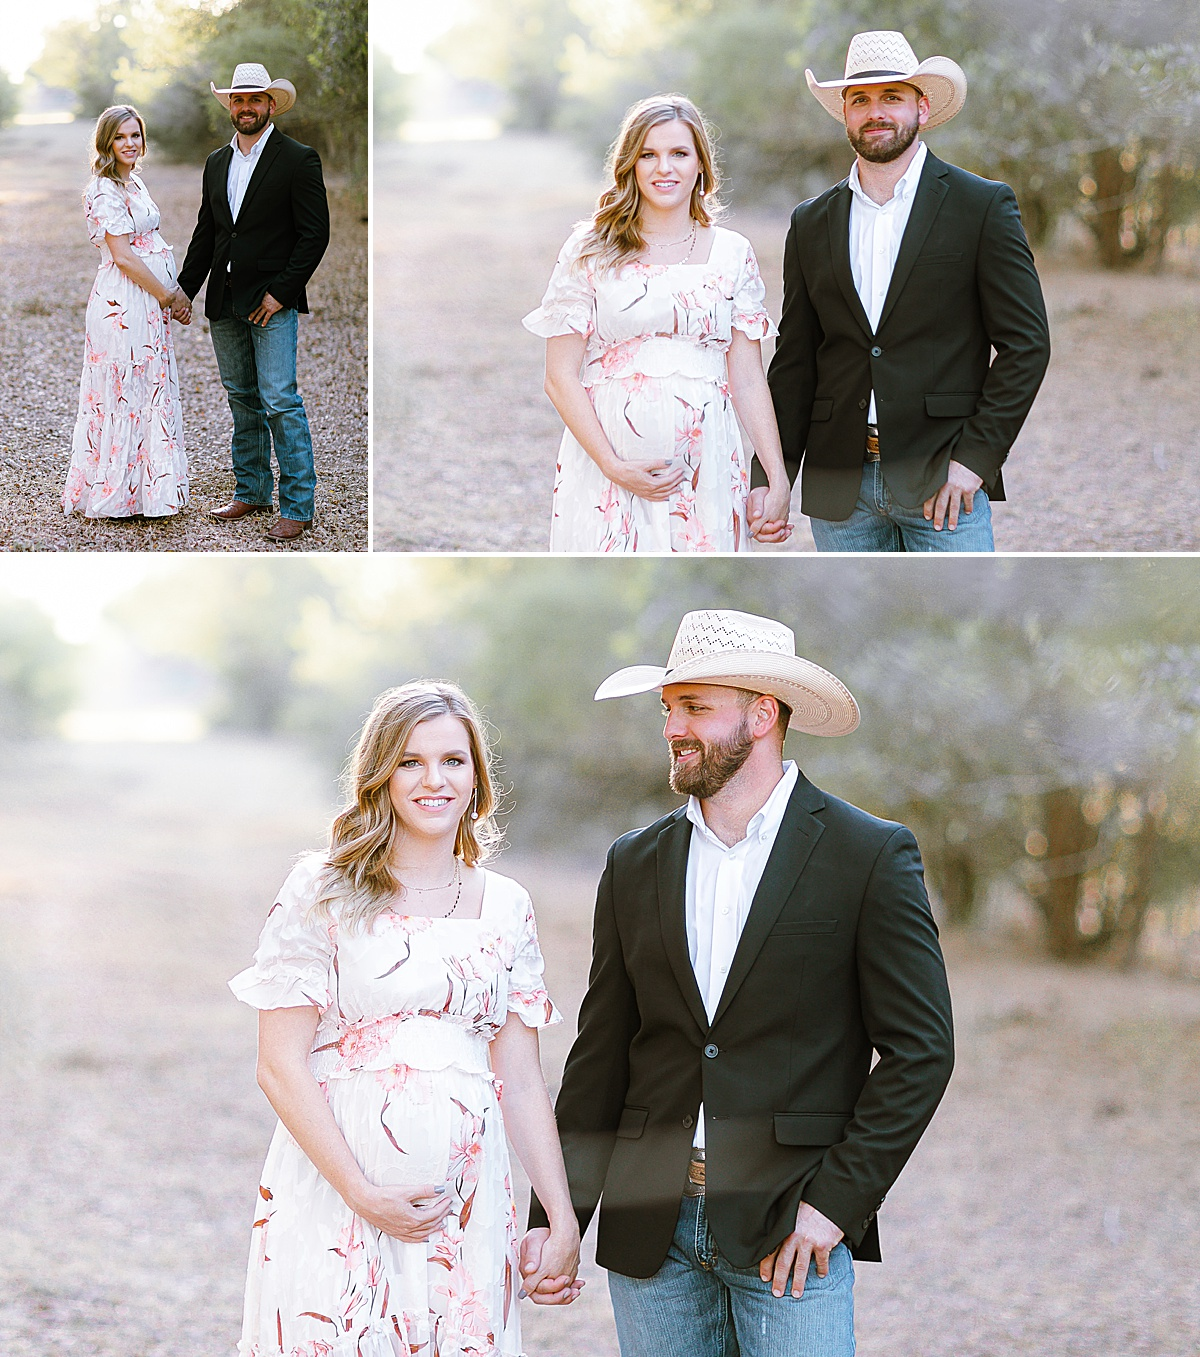 maternity-photo-session-lavernia-texas-carly-barton-photography_0002.jpg